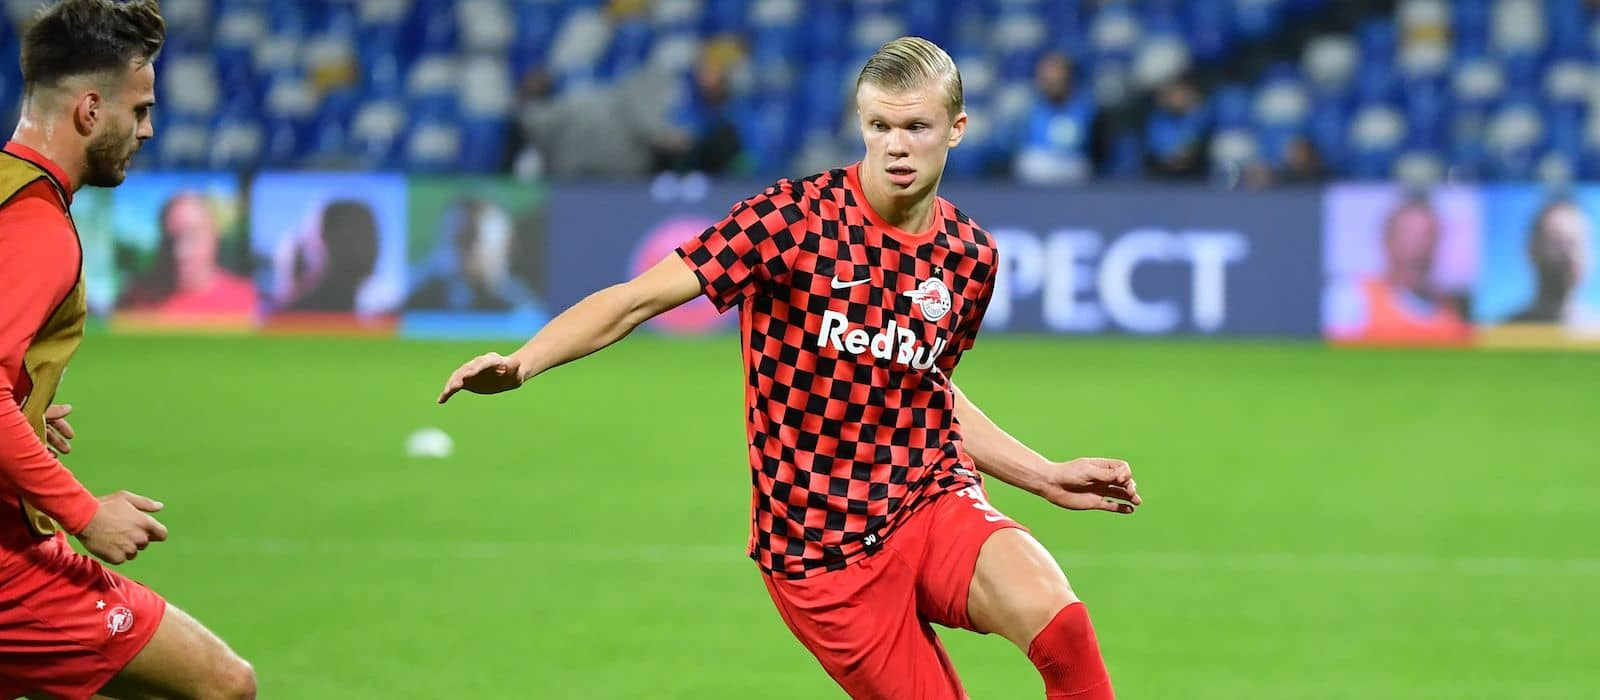 Manchester United staff 'convinced' Erling Braut Haaland will join Manchester United in January – report